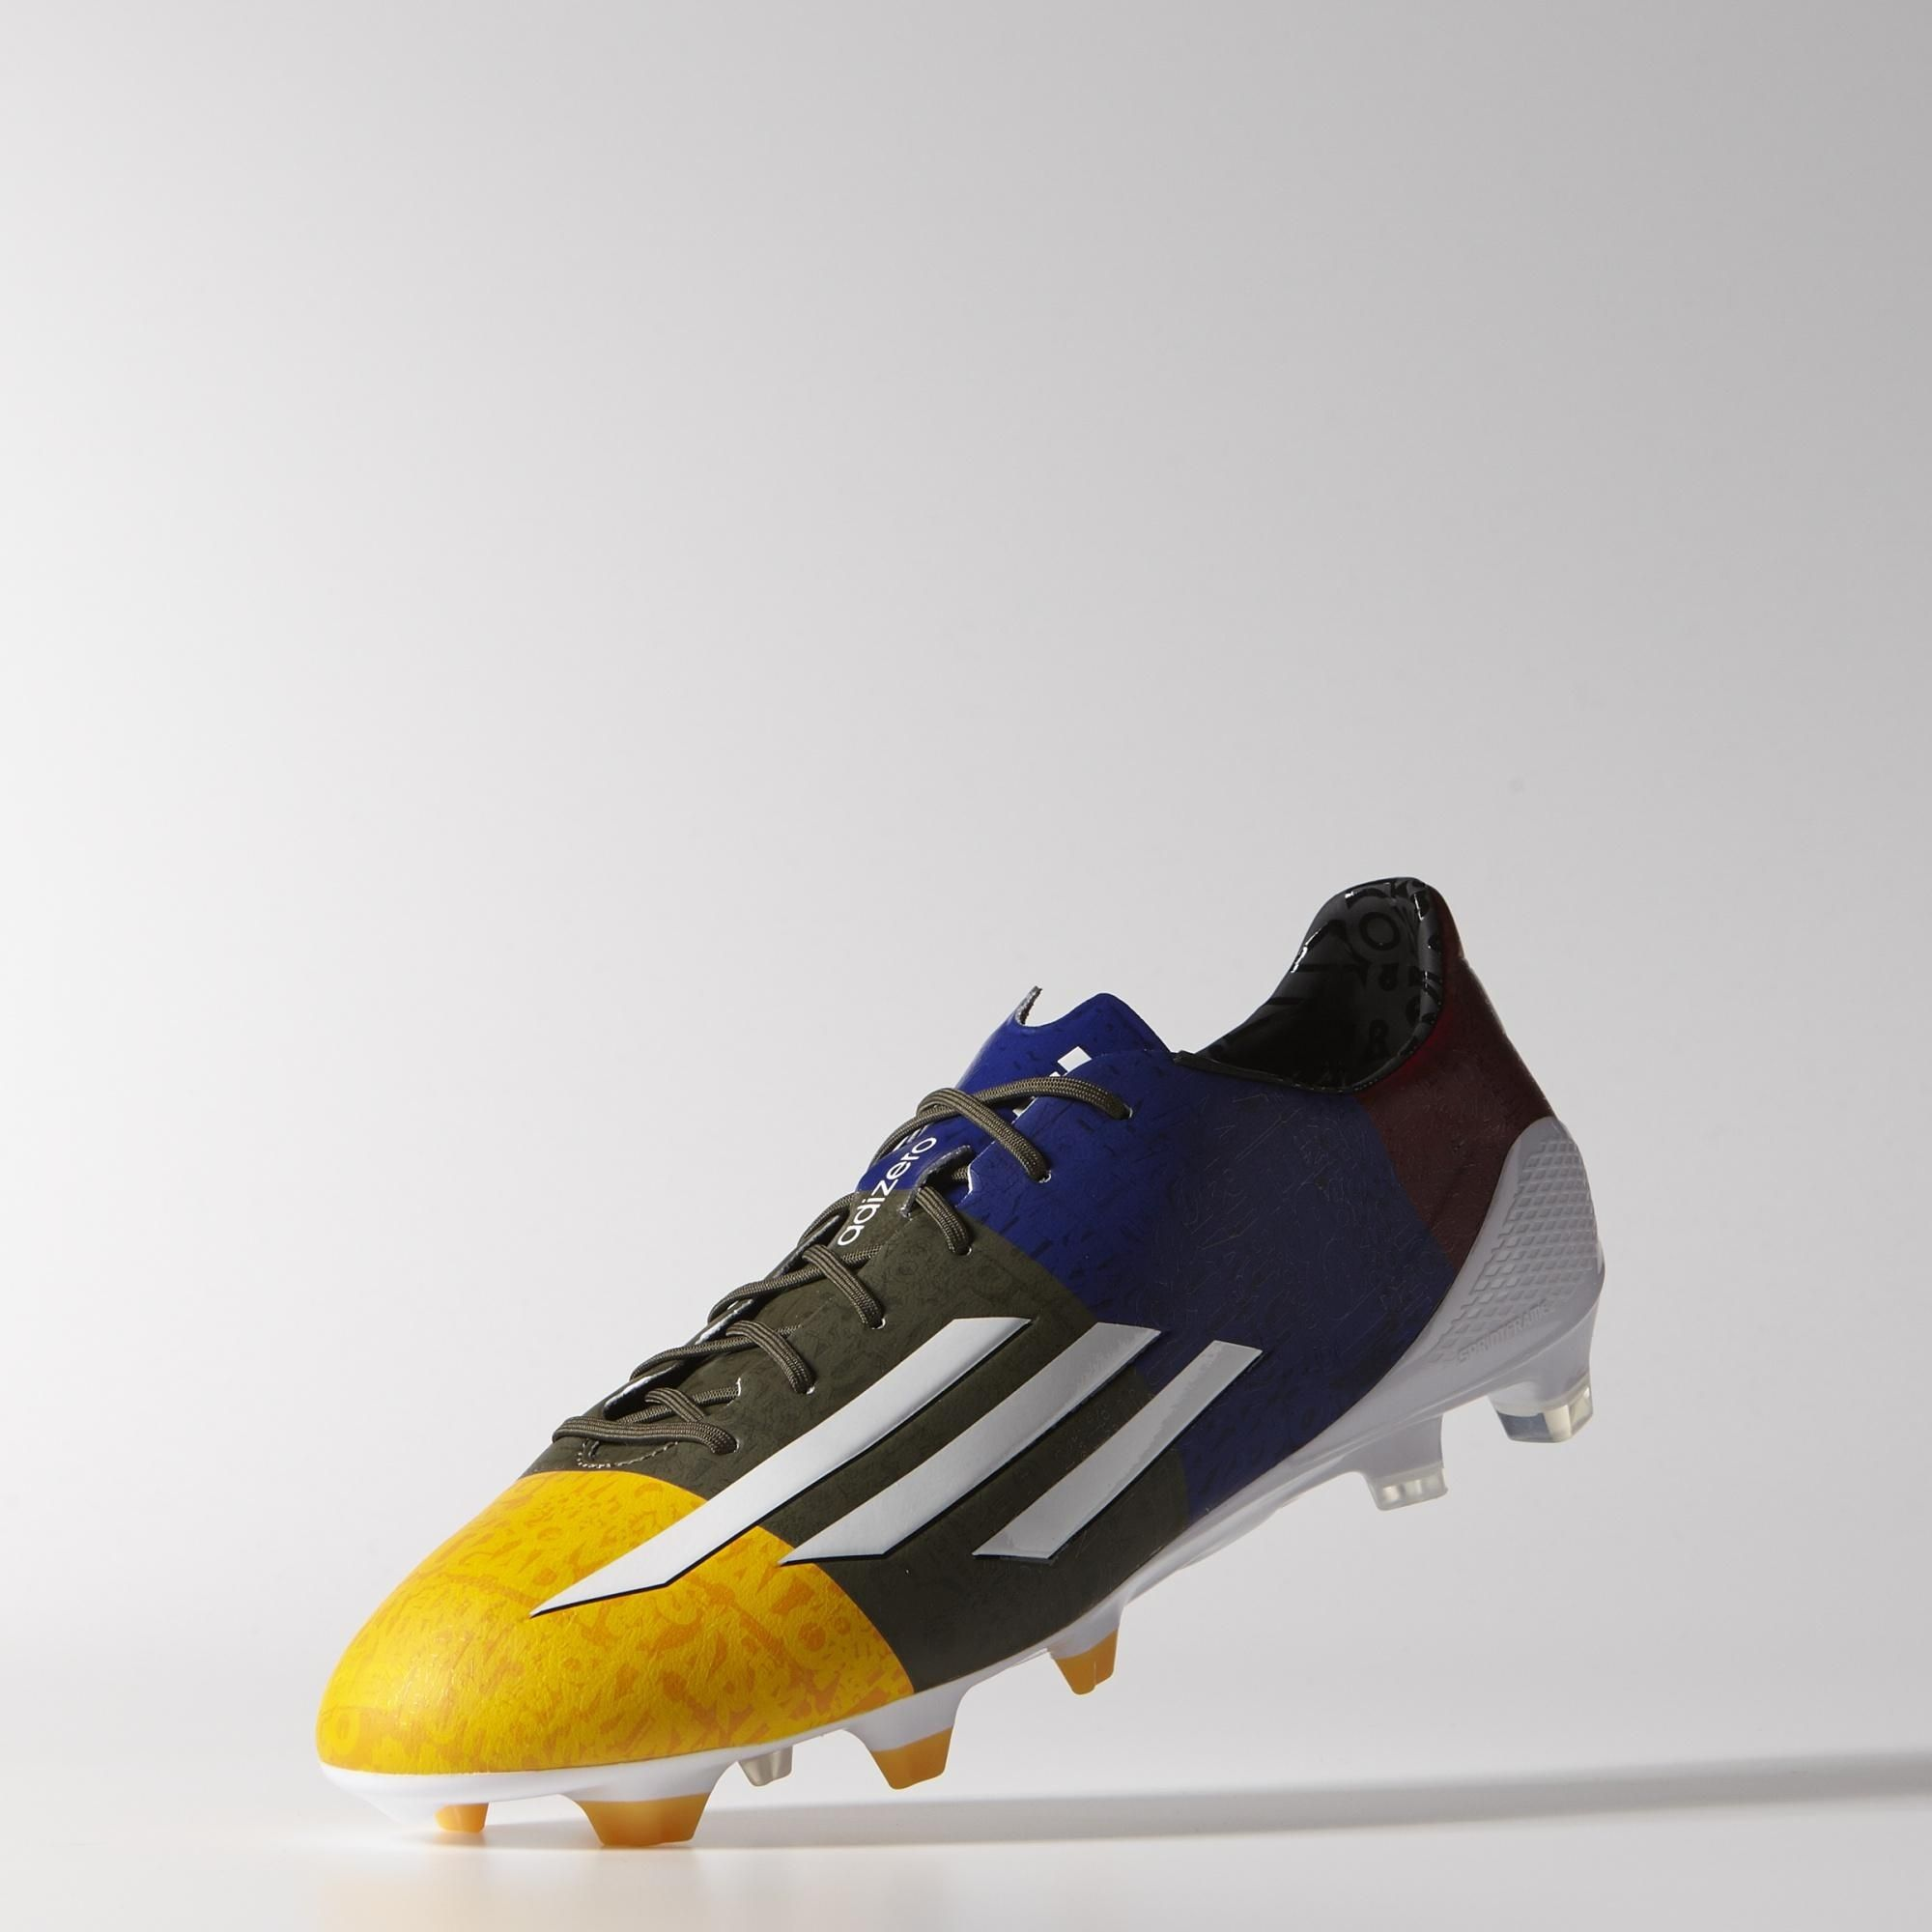 separation shoes 9bf87 a6c40 Adidas F50 adizero FG Messi Boots - Solar Gold  White  Earth Green